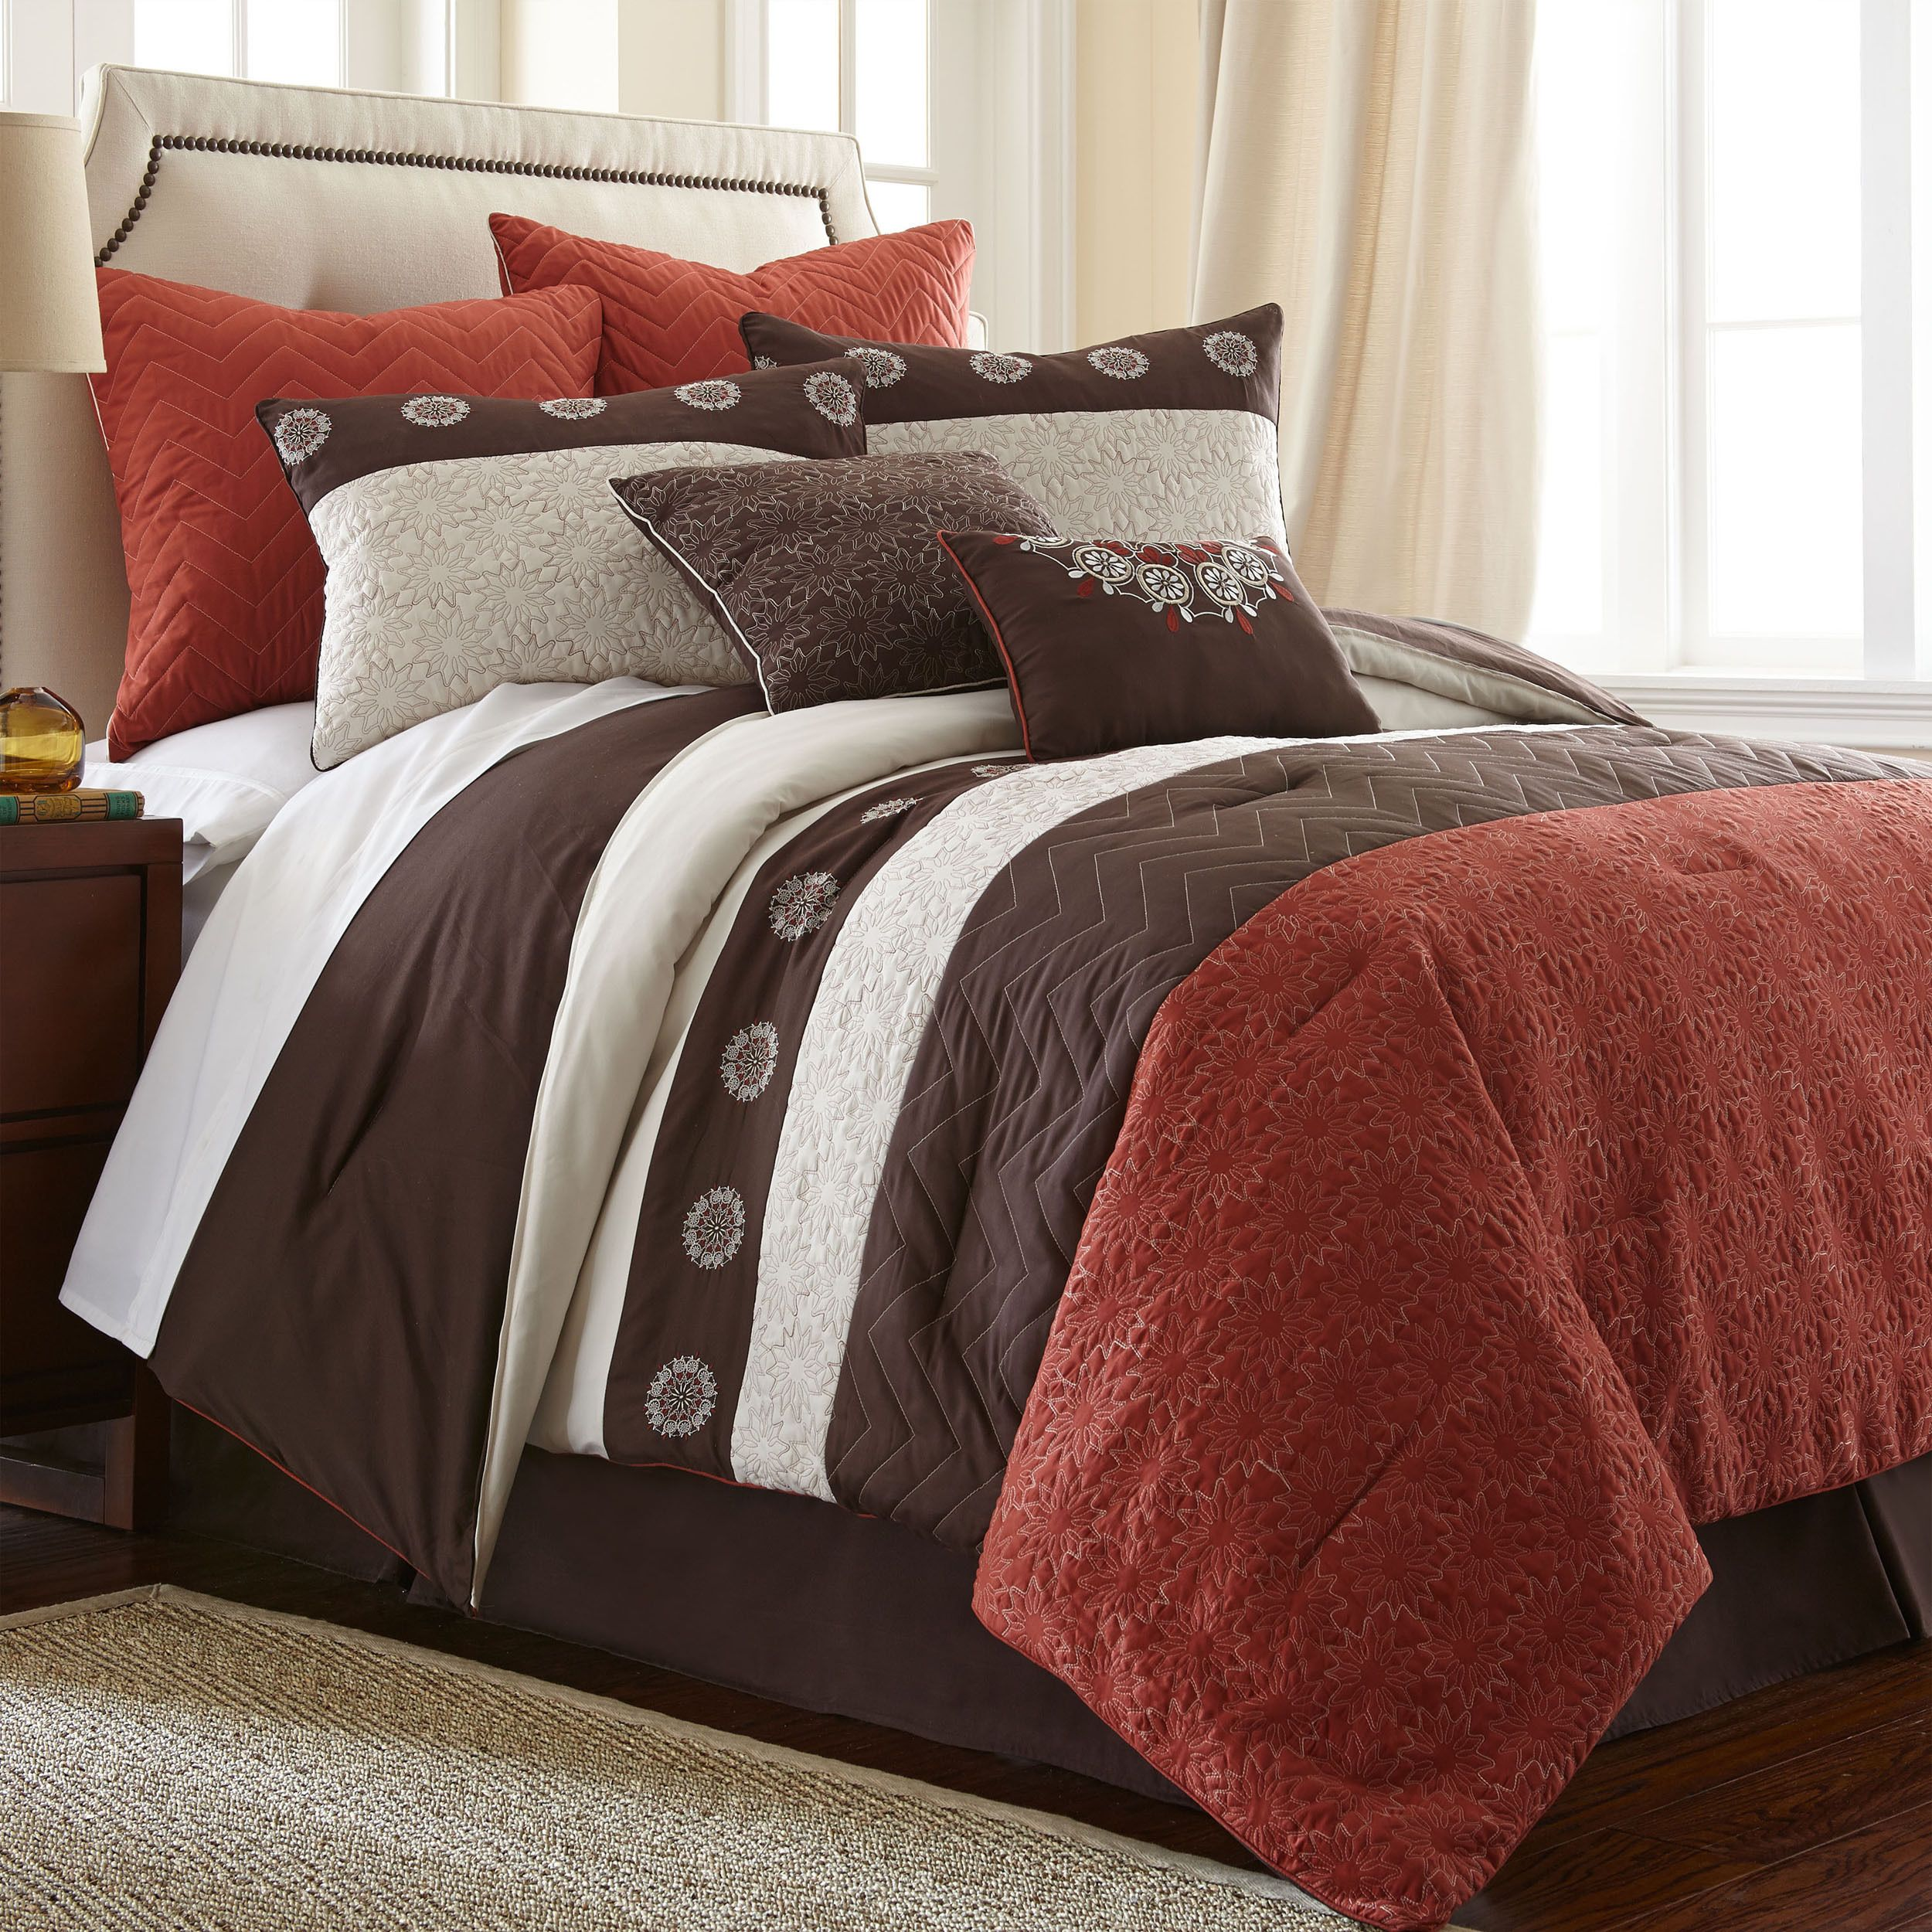 This elegant quilt set is crafted of 100 percent polyester for comfort and convenience. The three decorative pillows complete the look.